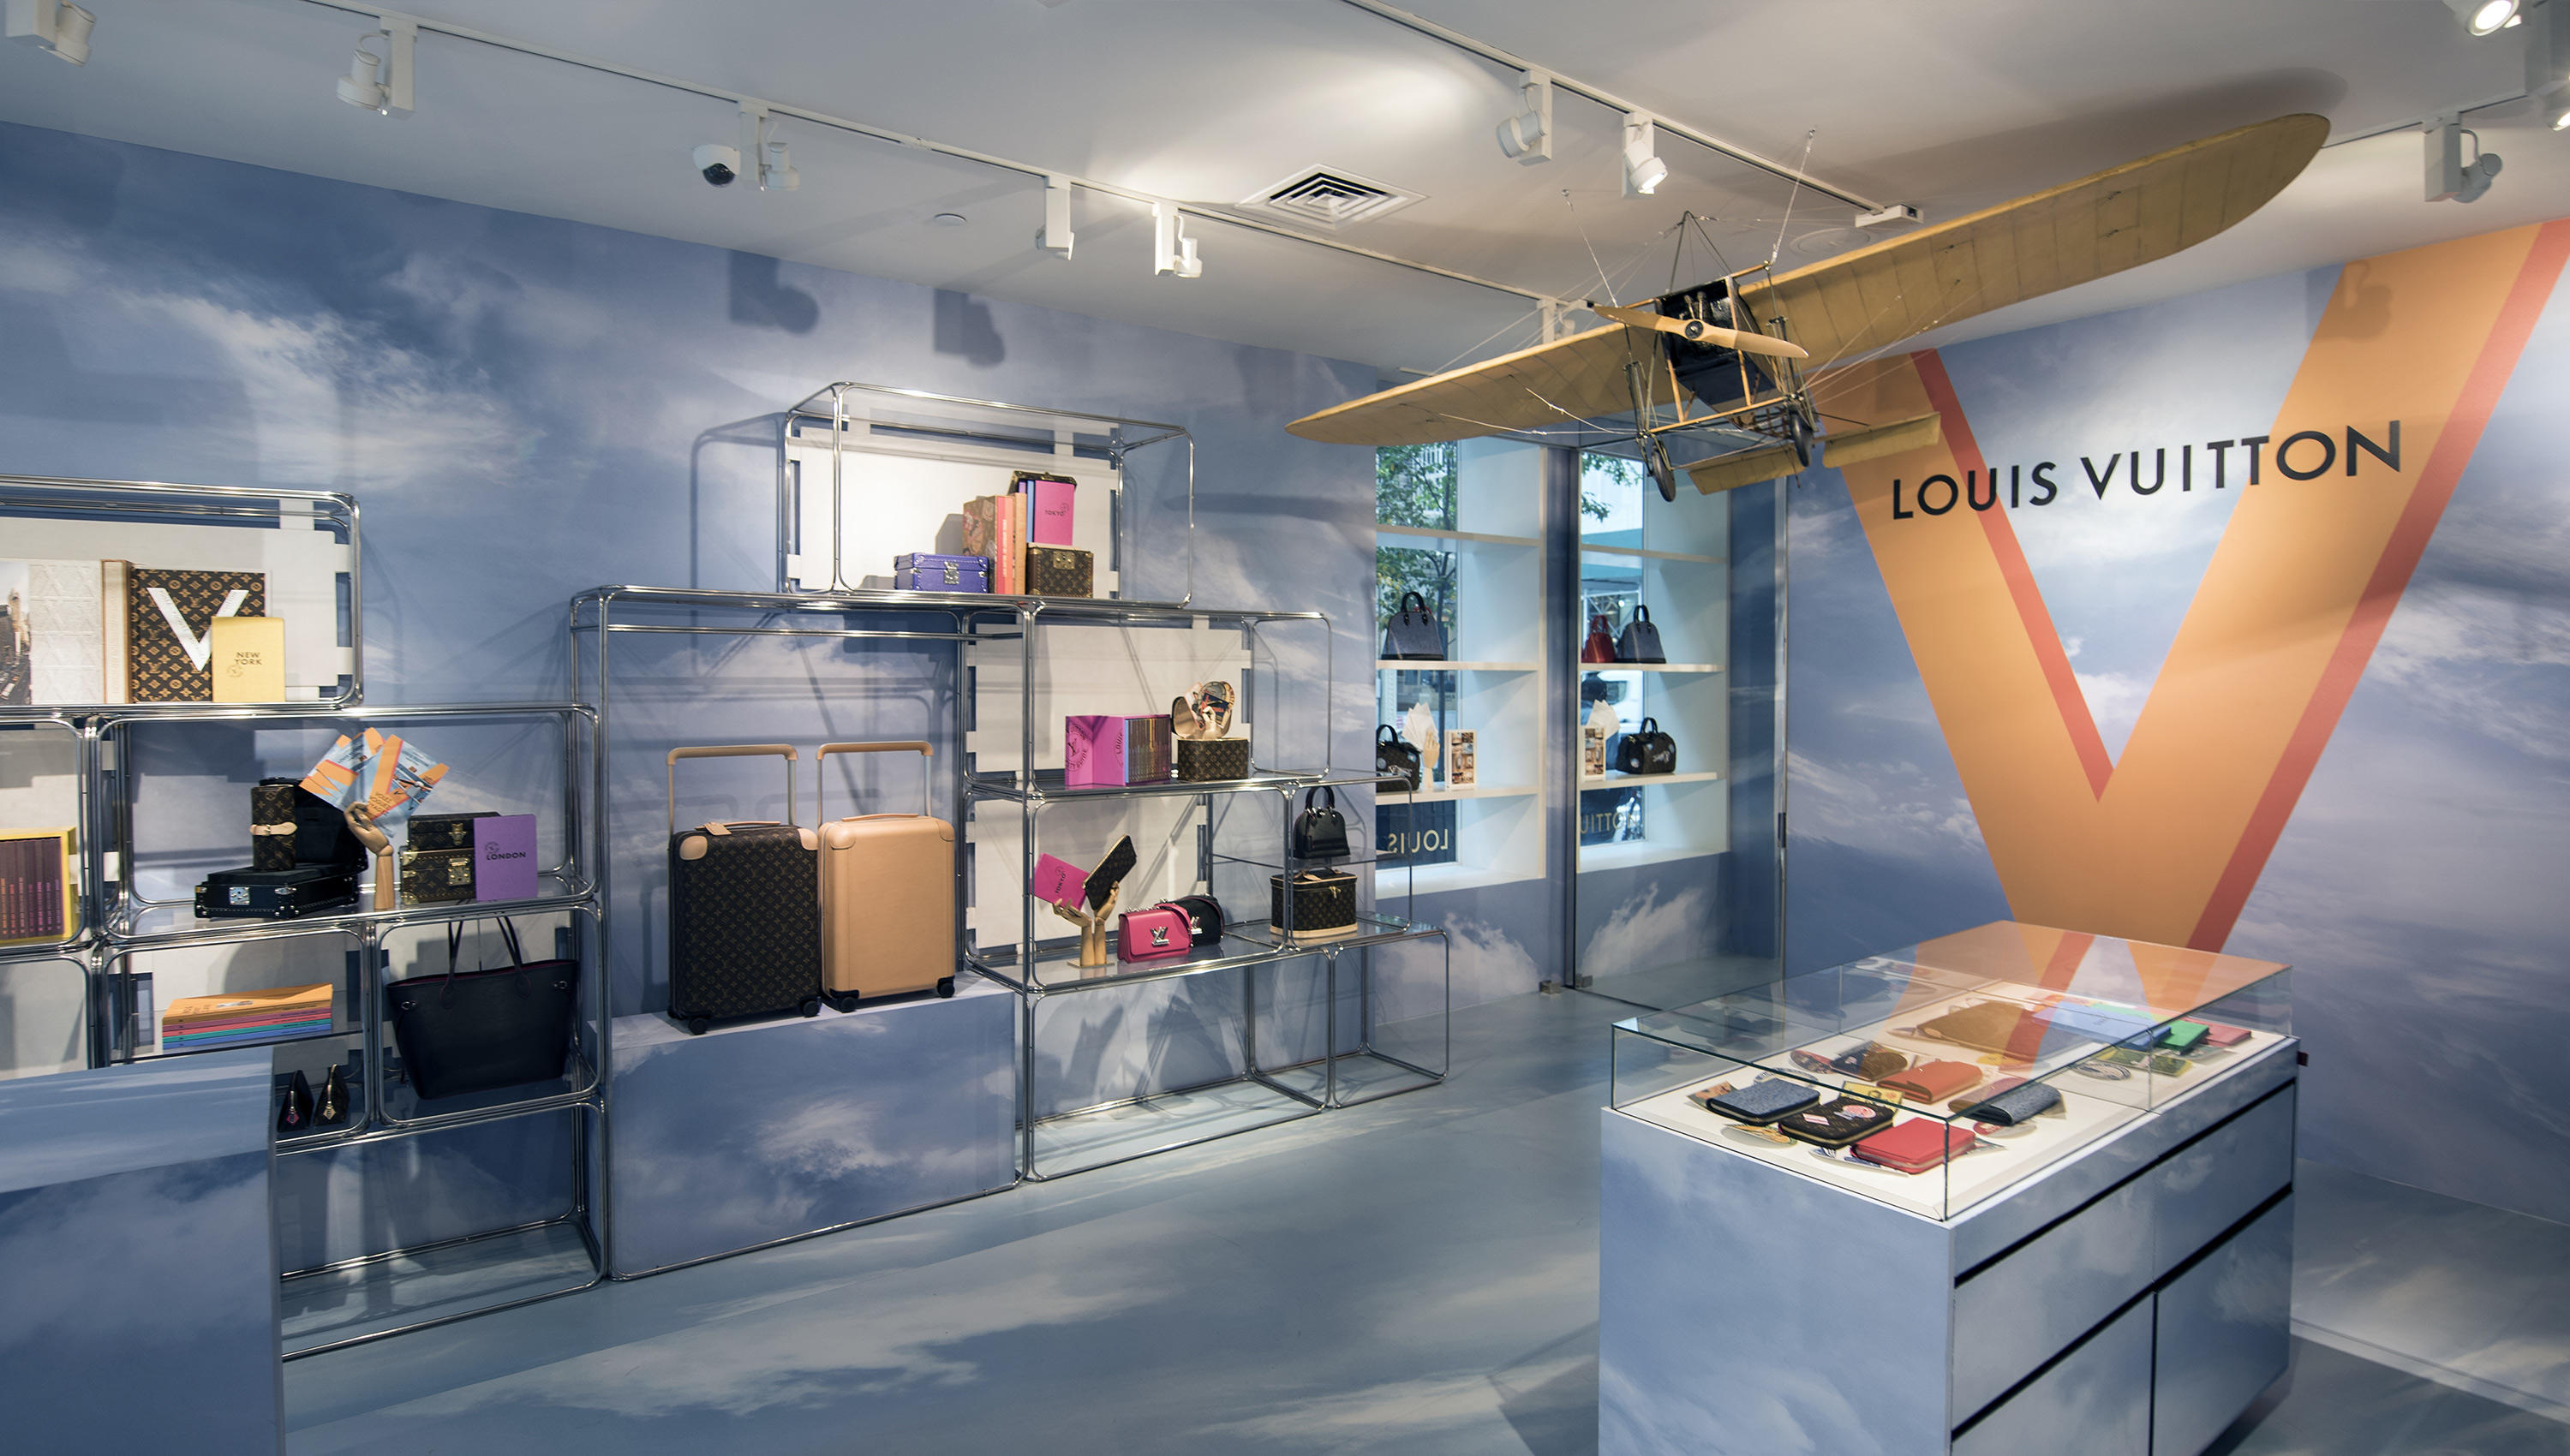 Louis Vuitton New York Soho -  Pop-up Store image 0